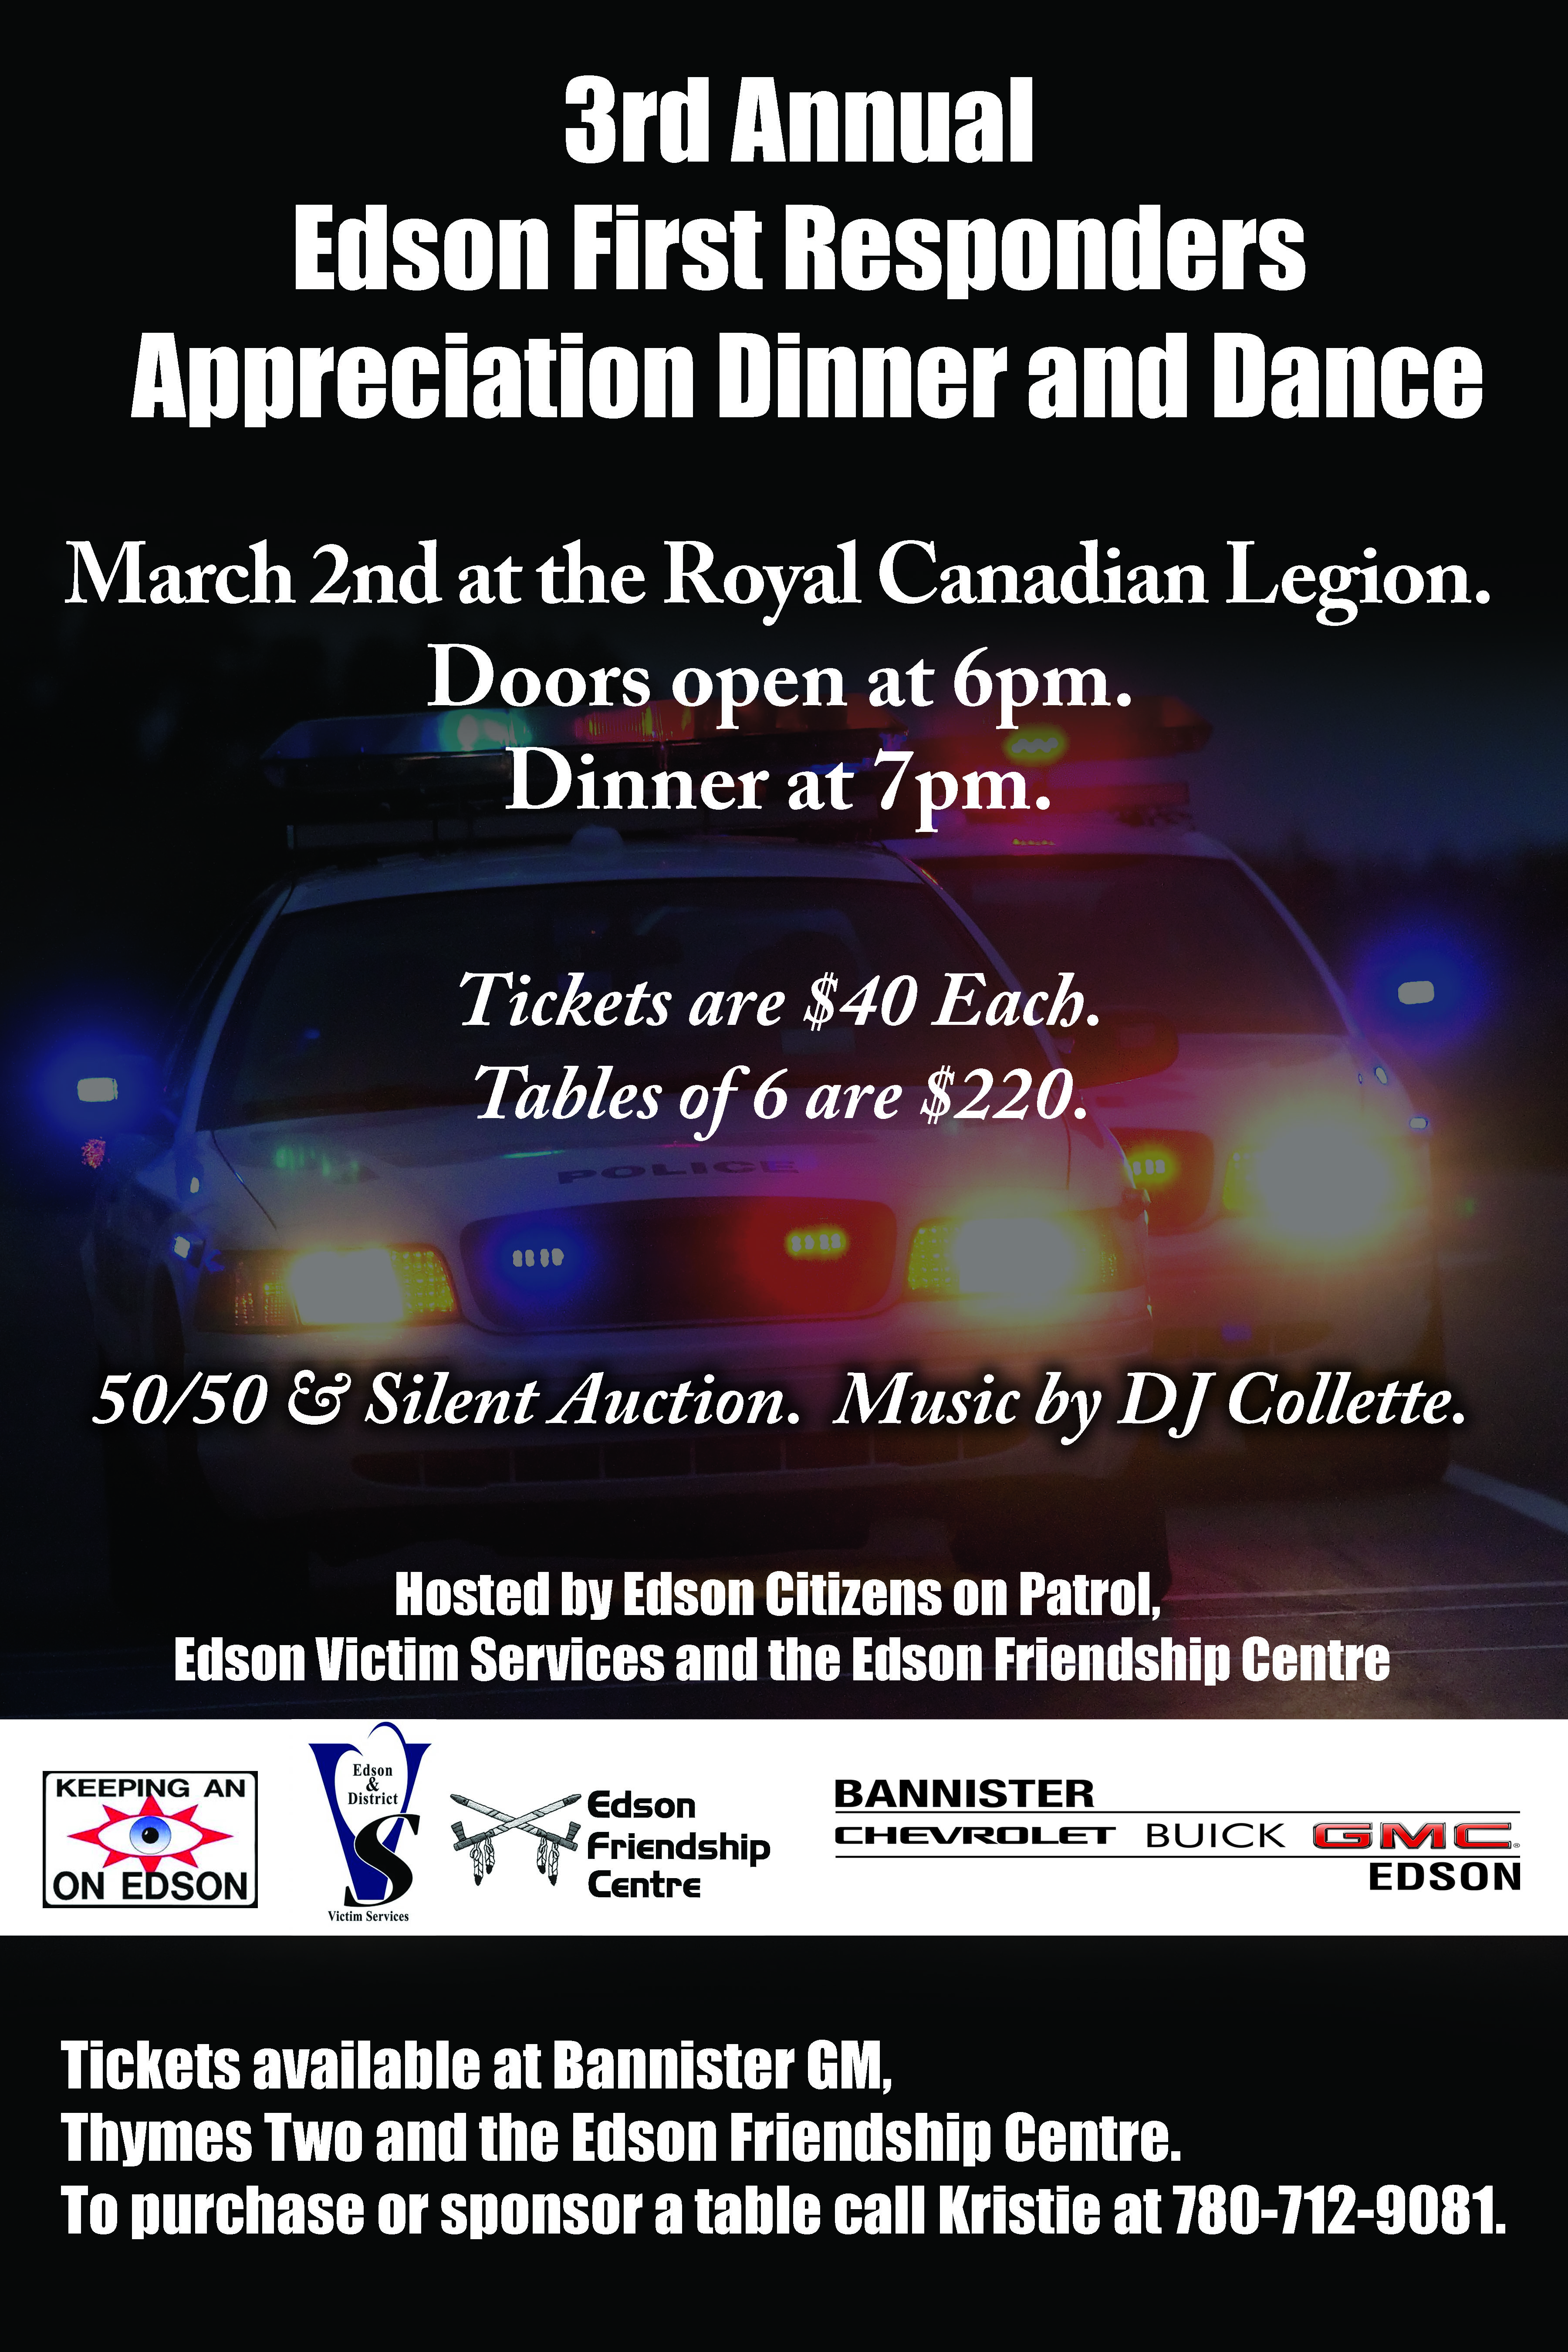 3rd Annual Edson First Responders Appreciation Dinner and Dance @ Royal Canadian Legion